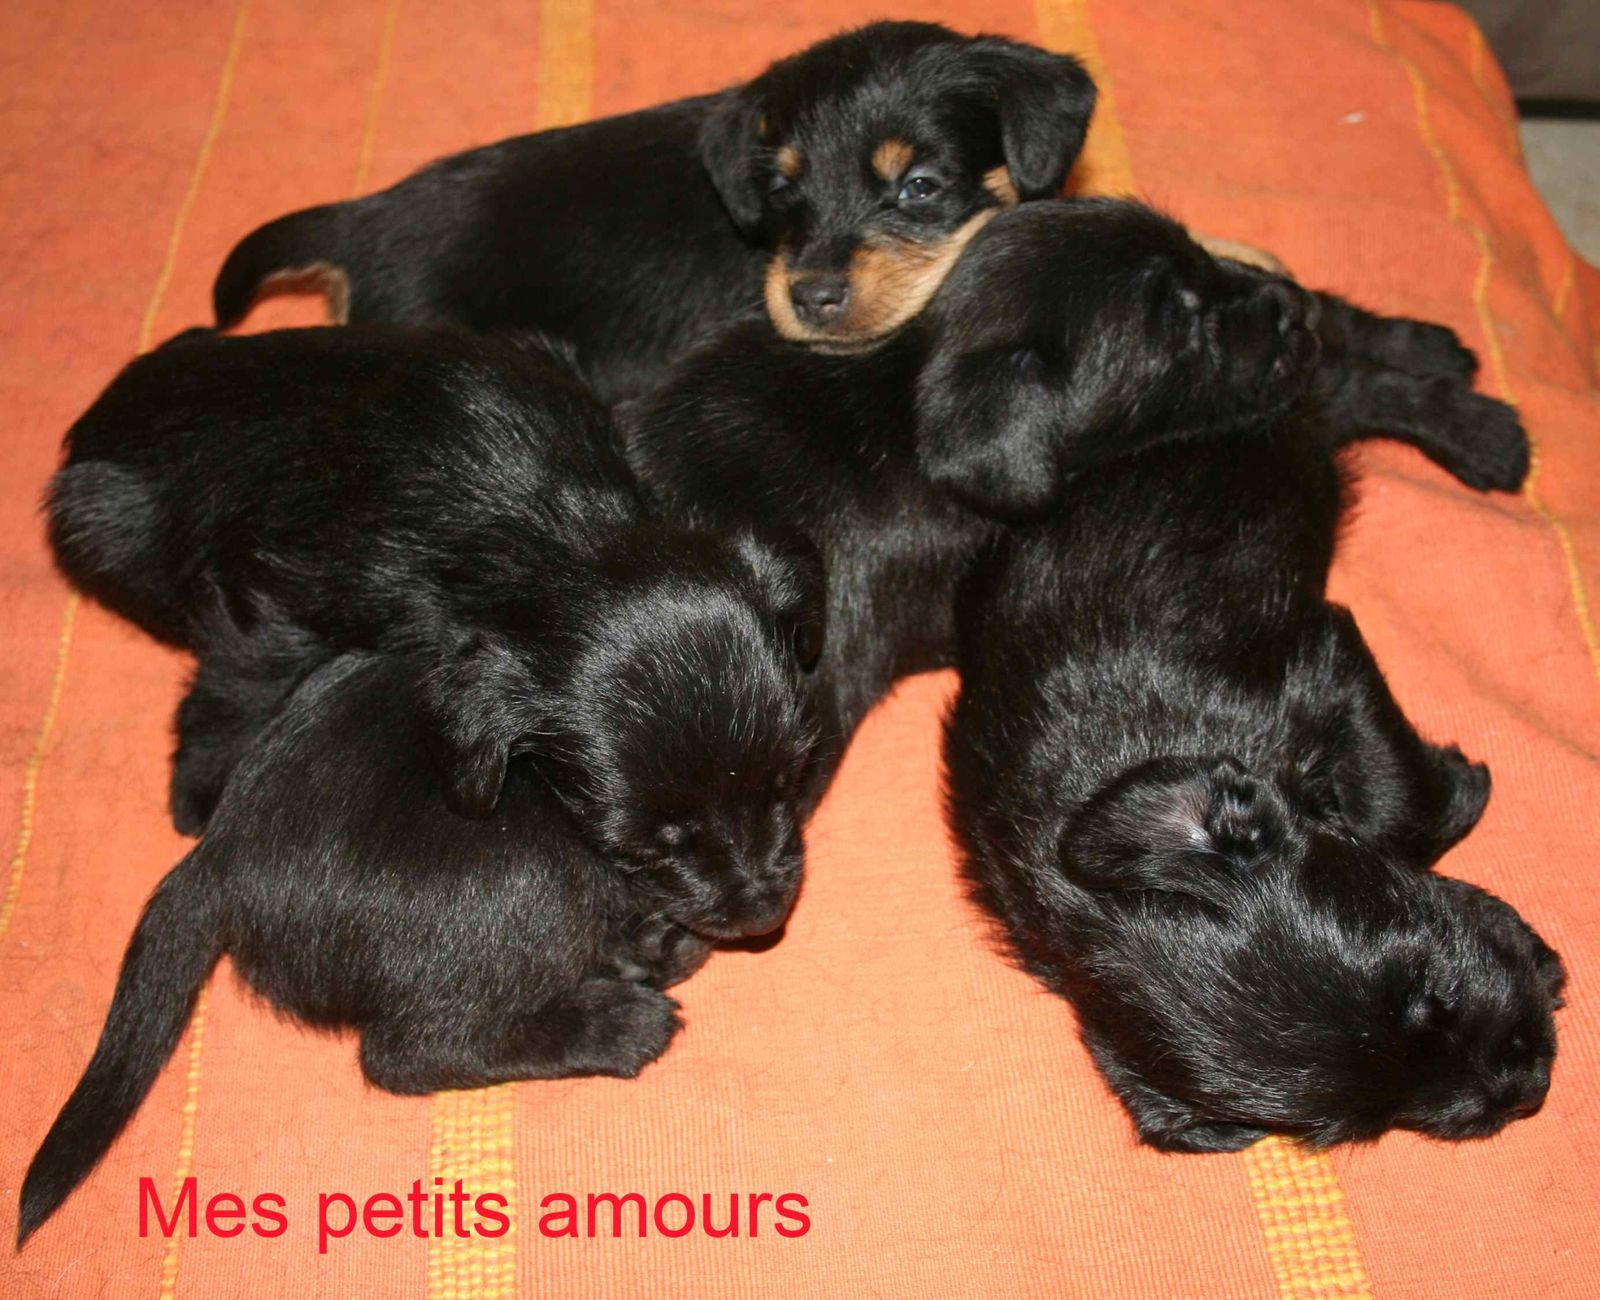 Mes petits chiens.